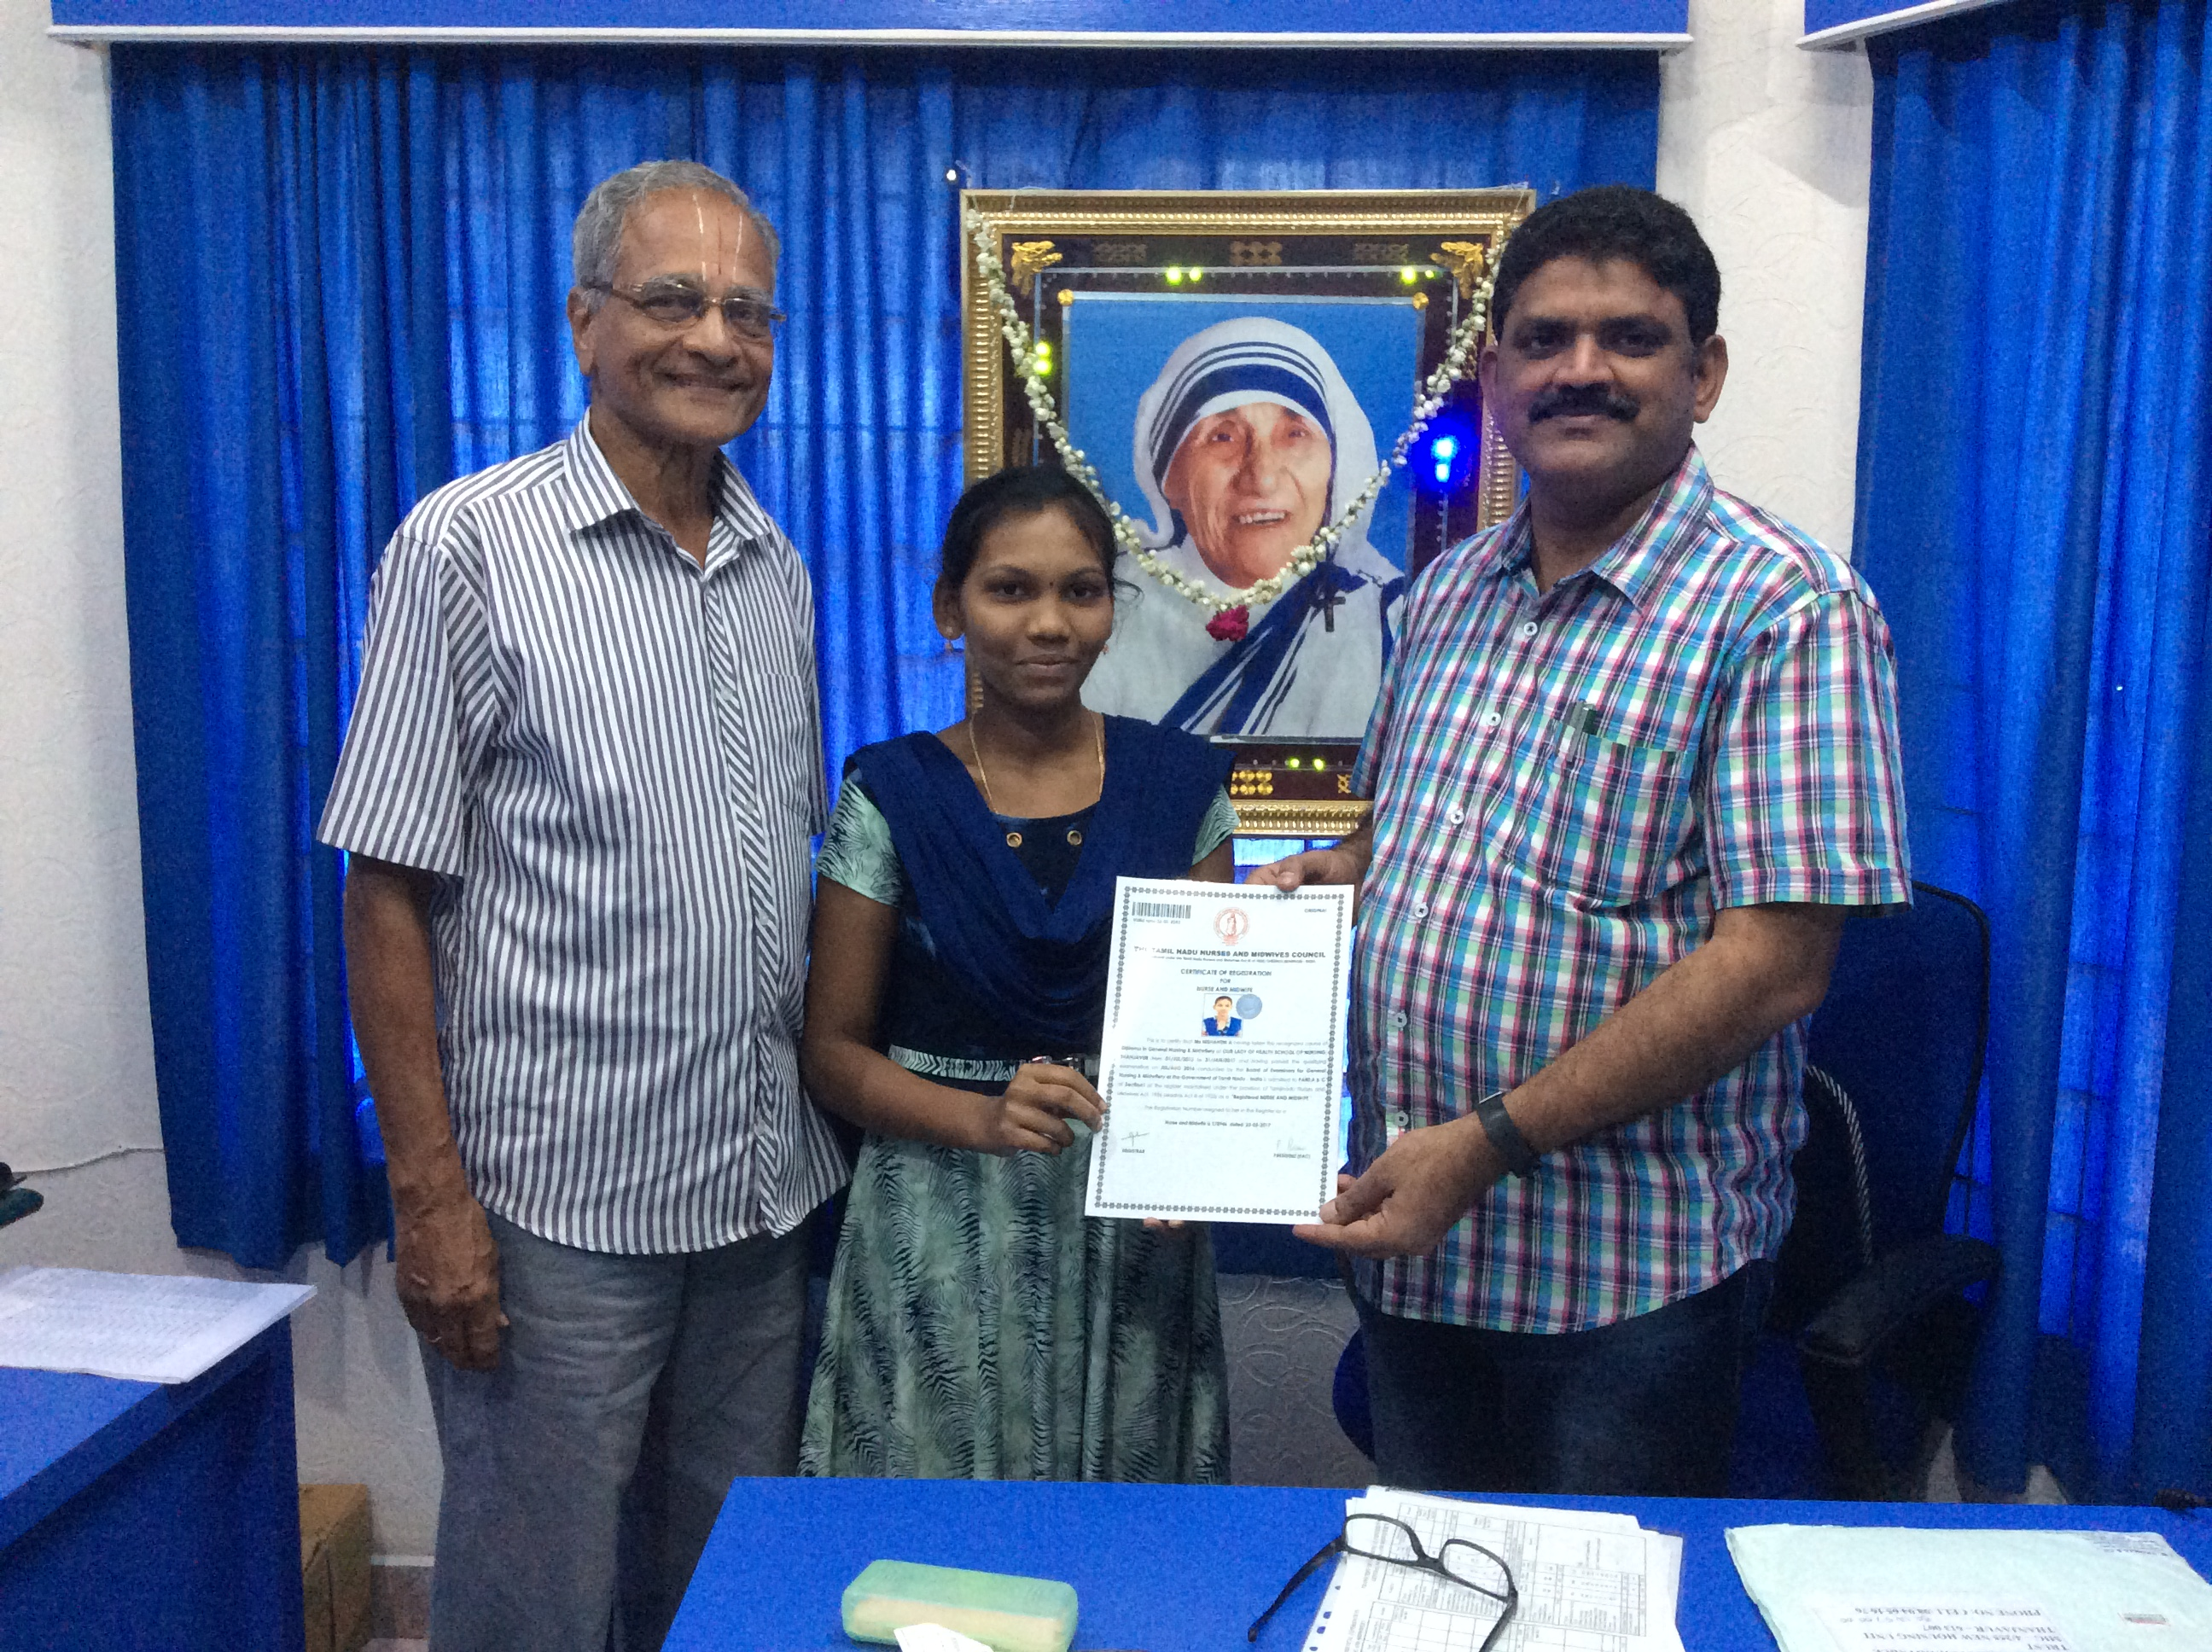 Chairman presenting the GNM certificate to Selvi. Nishanthi